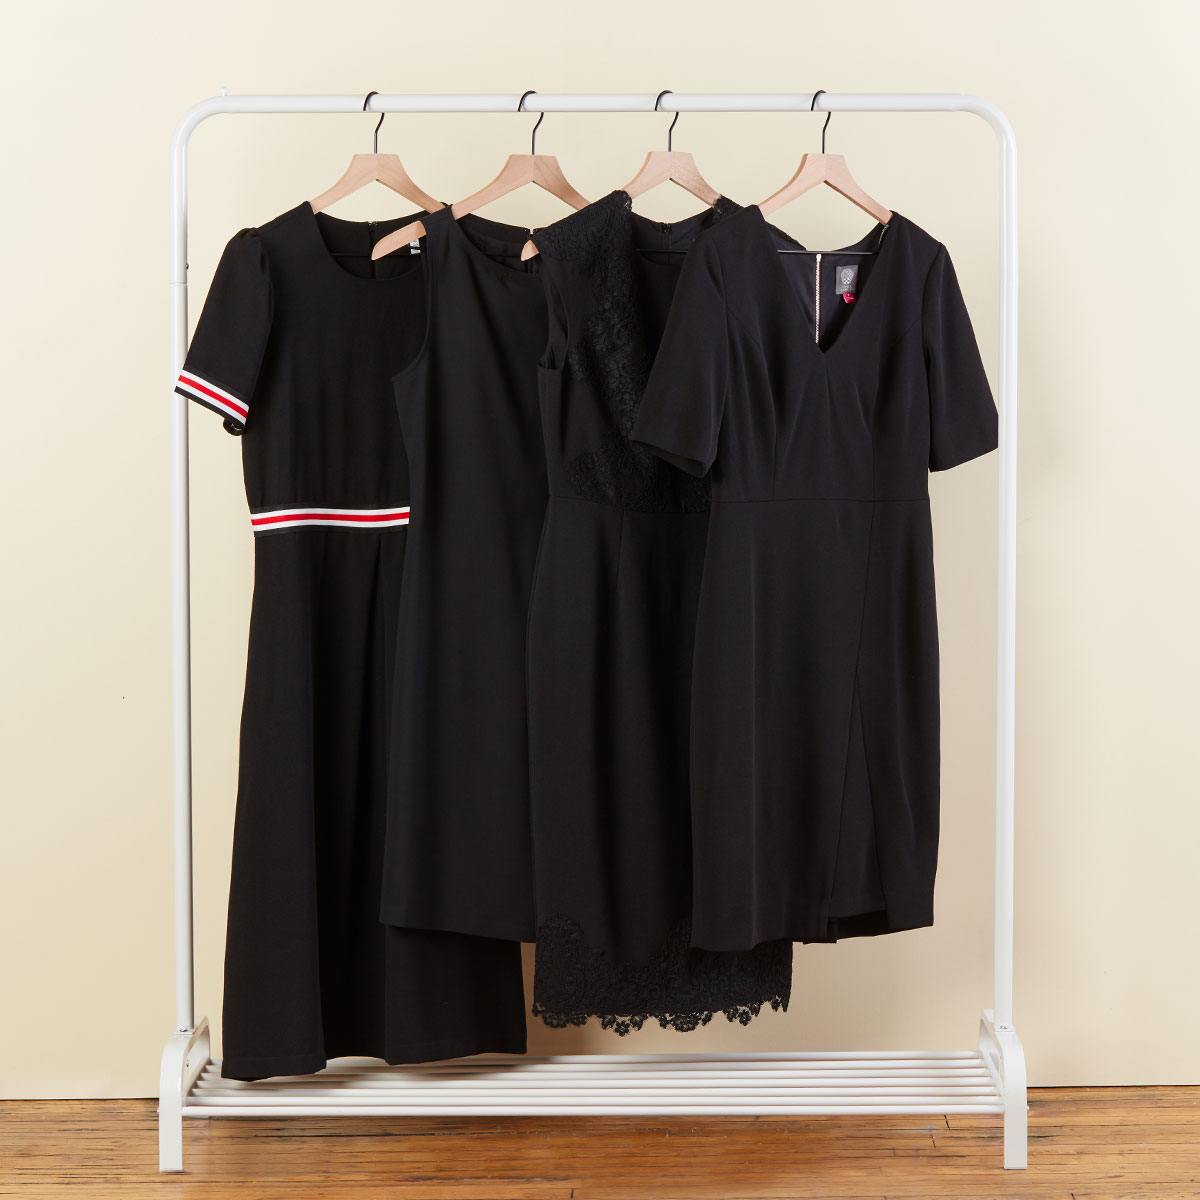 Women's black dresses